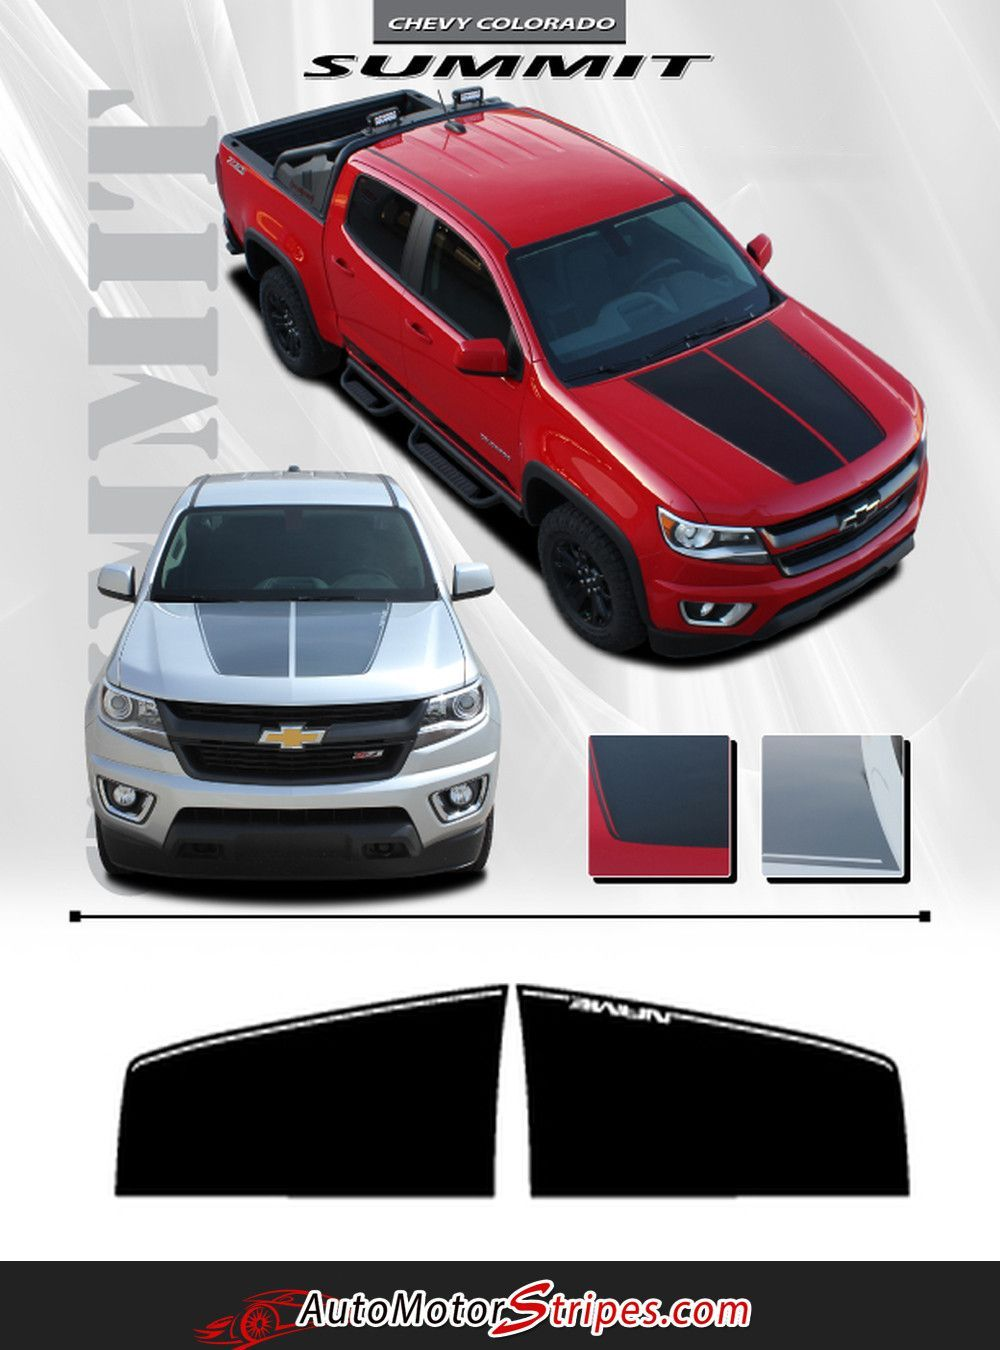 2015-2019 Chevy Colorado SUMMIT Split Hood Factory OEM Style